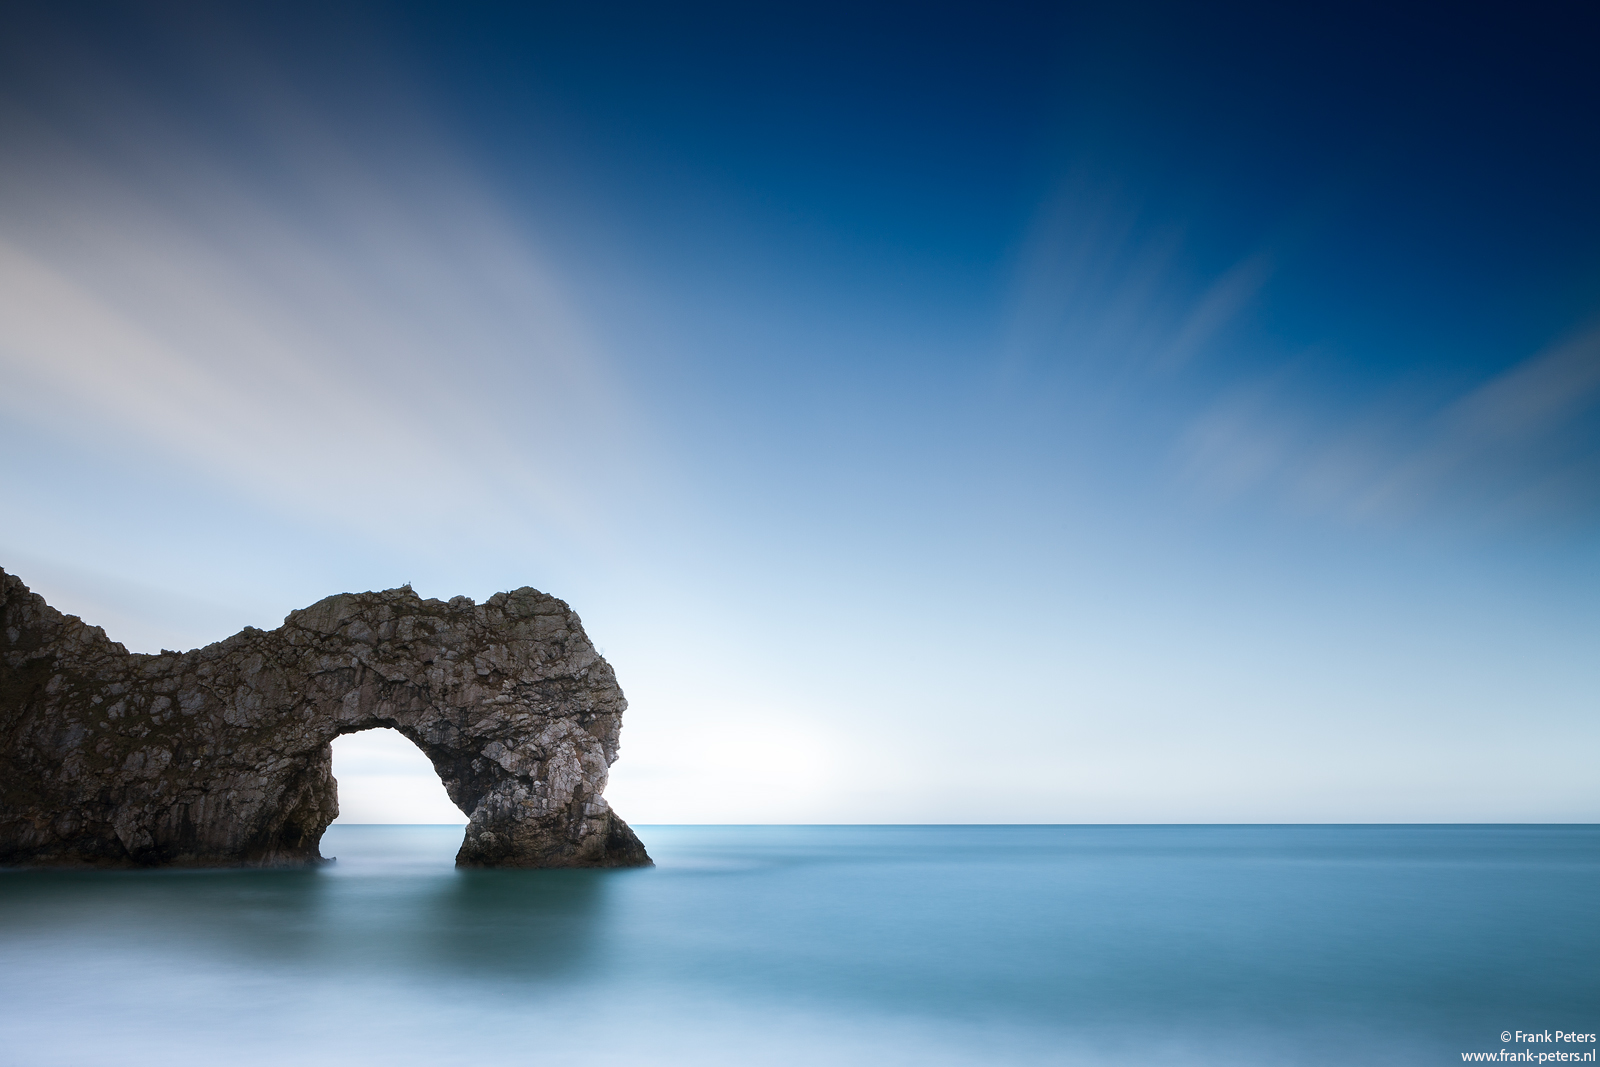 Durdle Door copyright Frank Peters